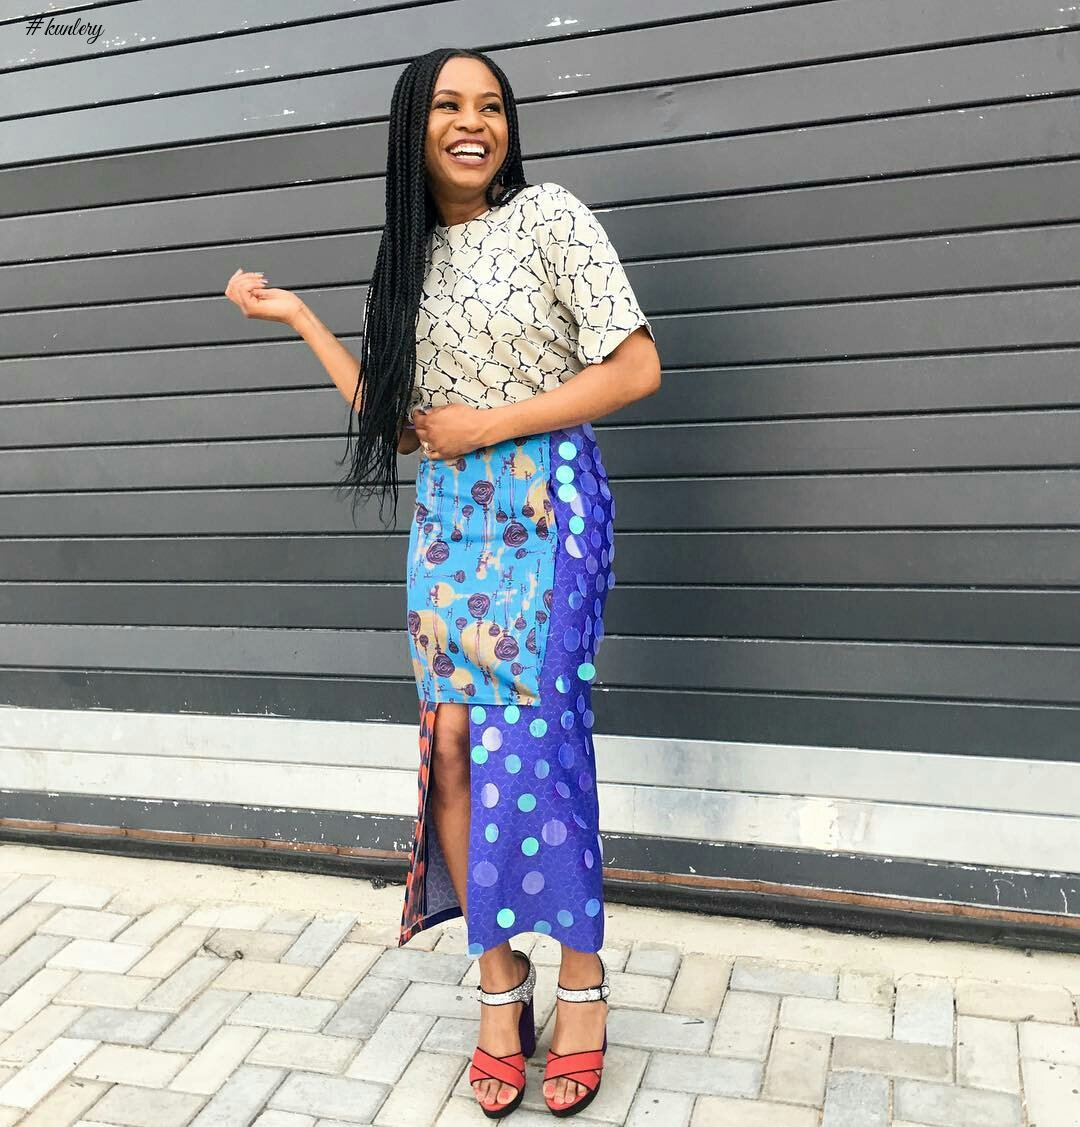 LATEST ANKARA TRENDS YOU NEED TO SEE